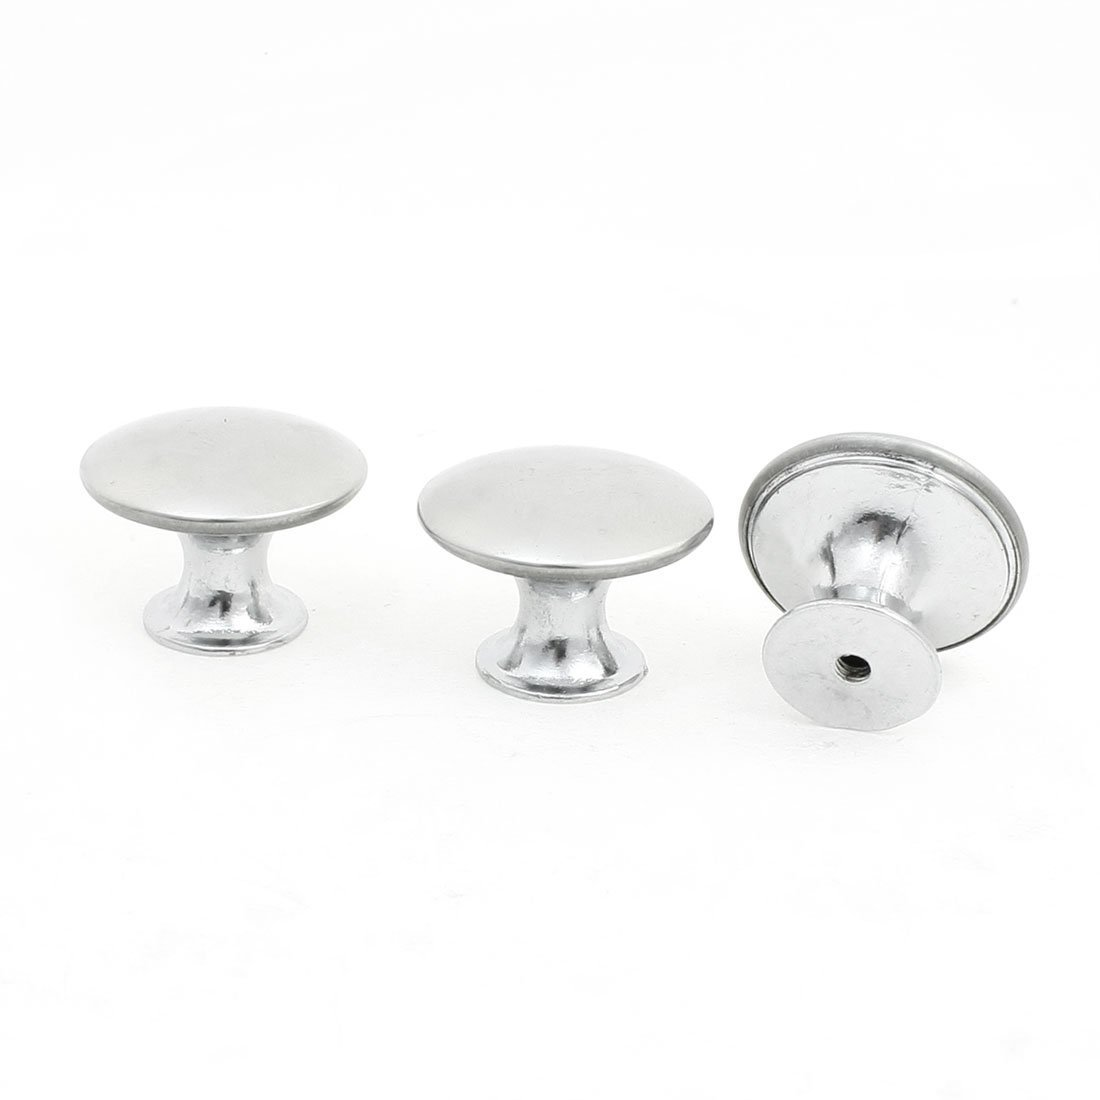 3x Drawer Fitting 1.1' Dia Pull Handle 304 Stainless Steel Round Knob Sourcingmap a13100400ux0826